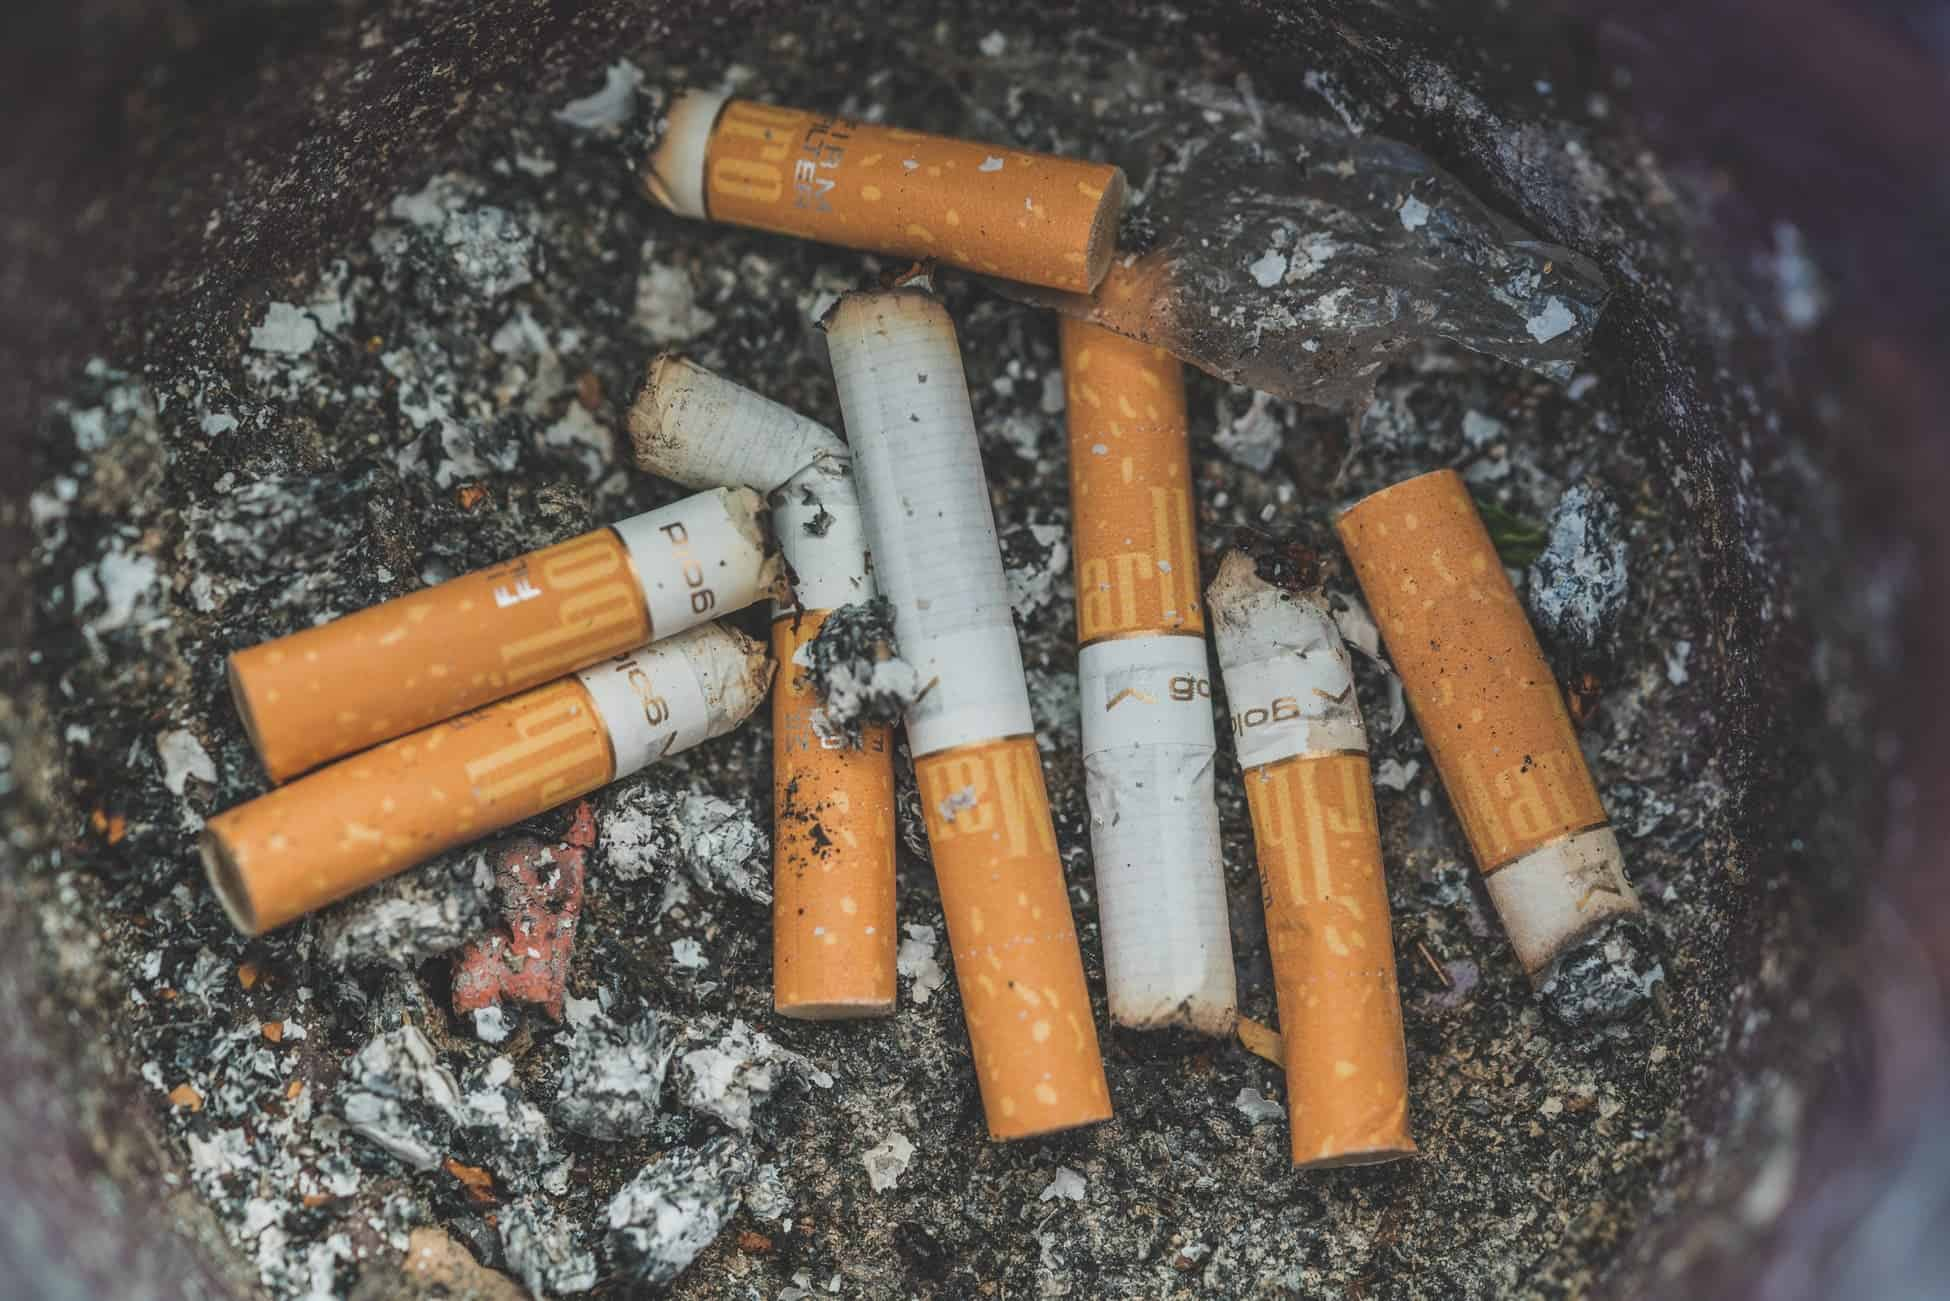 Even a single cigarette a day can be devastating for your health